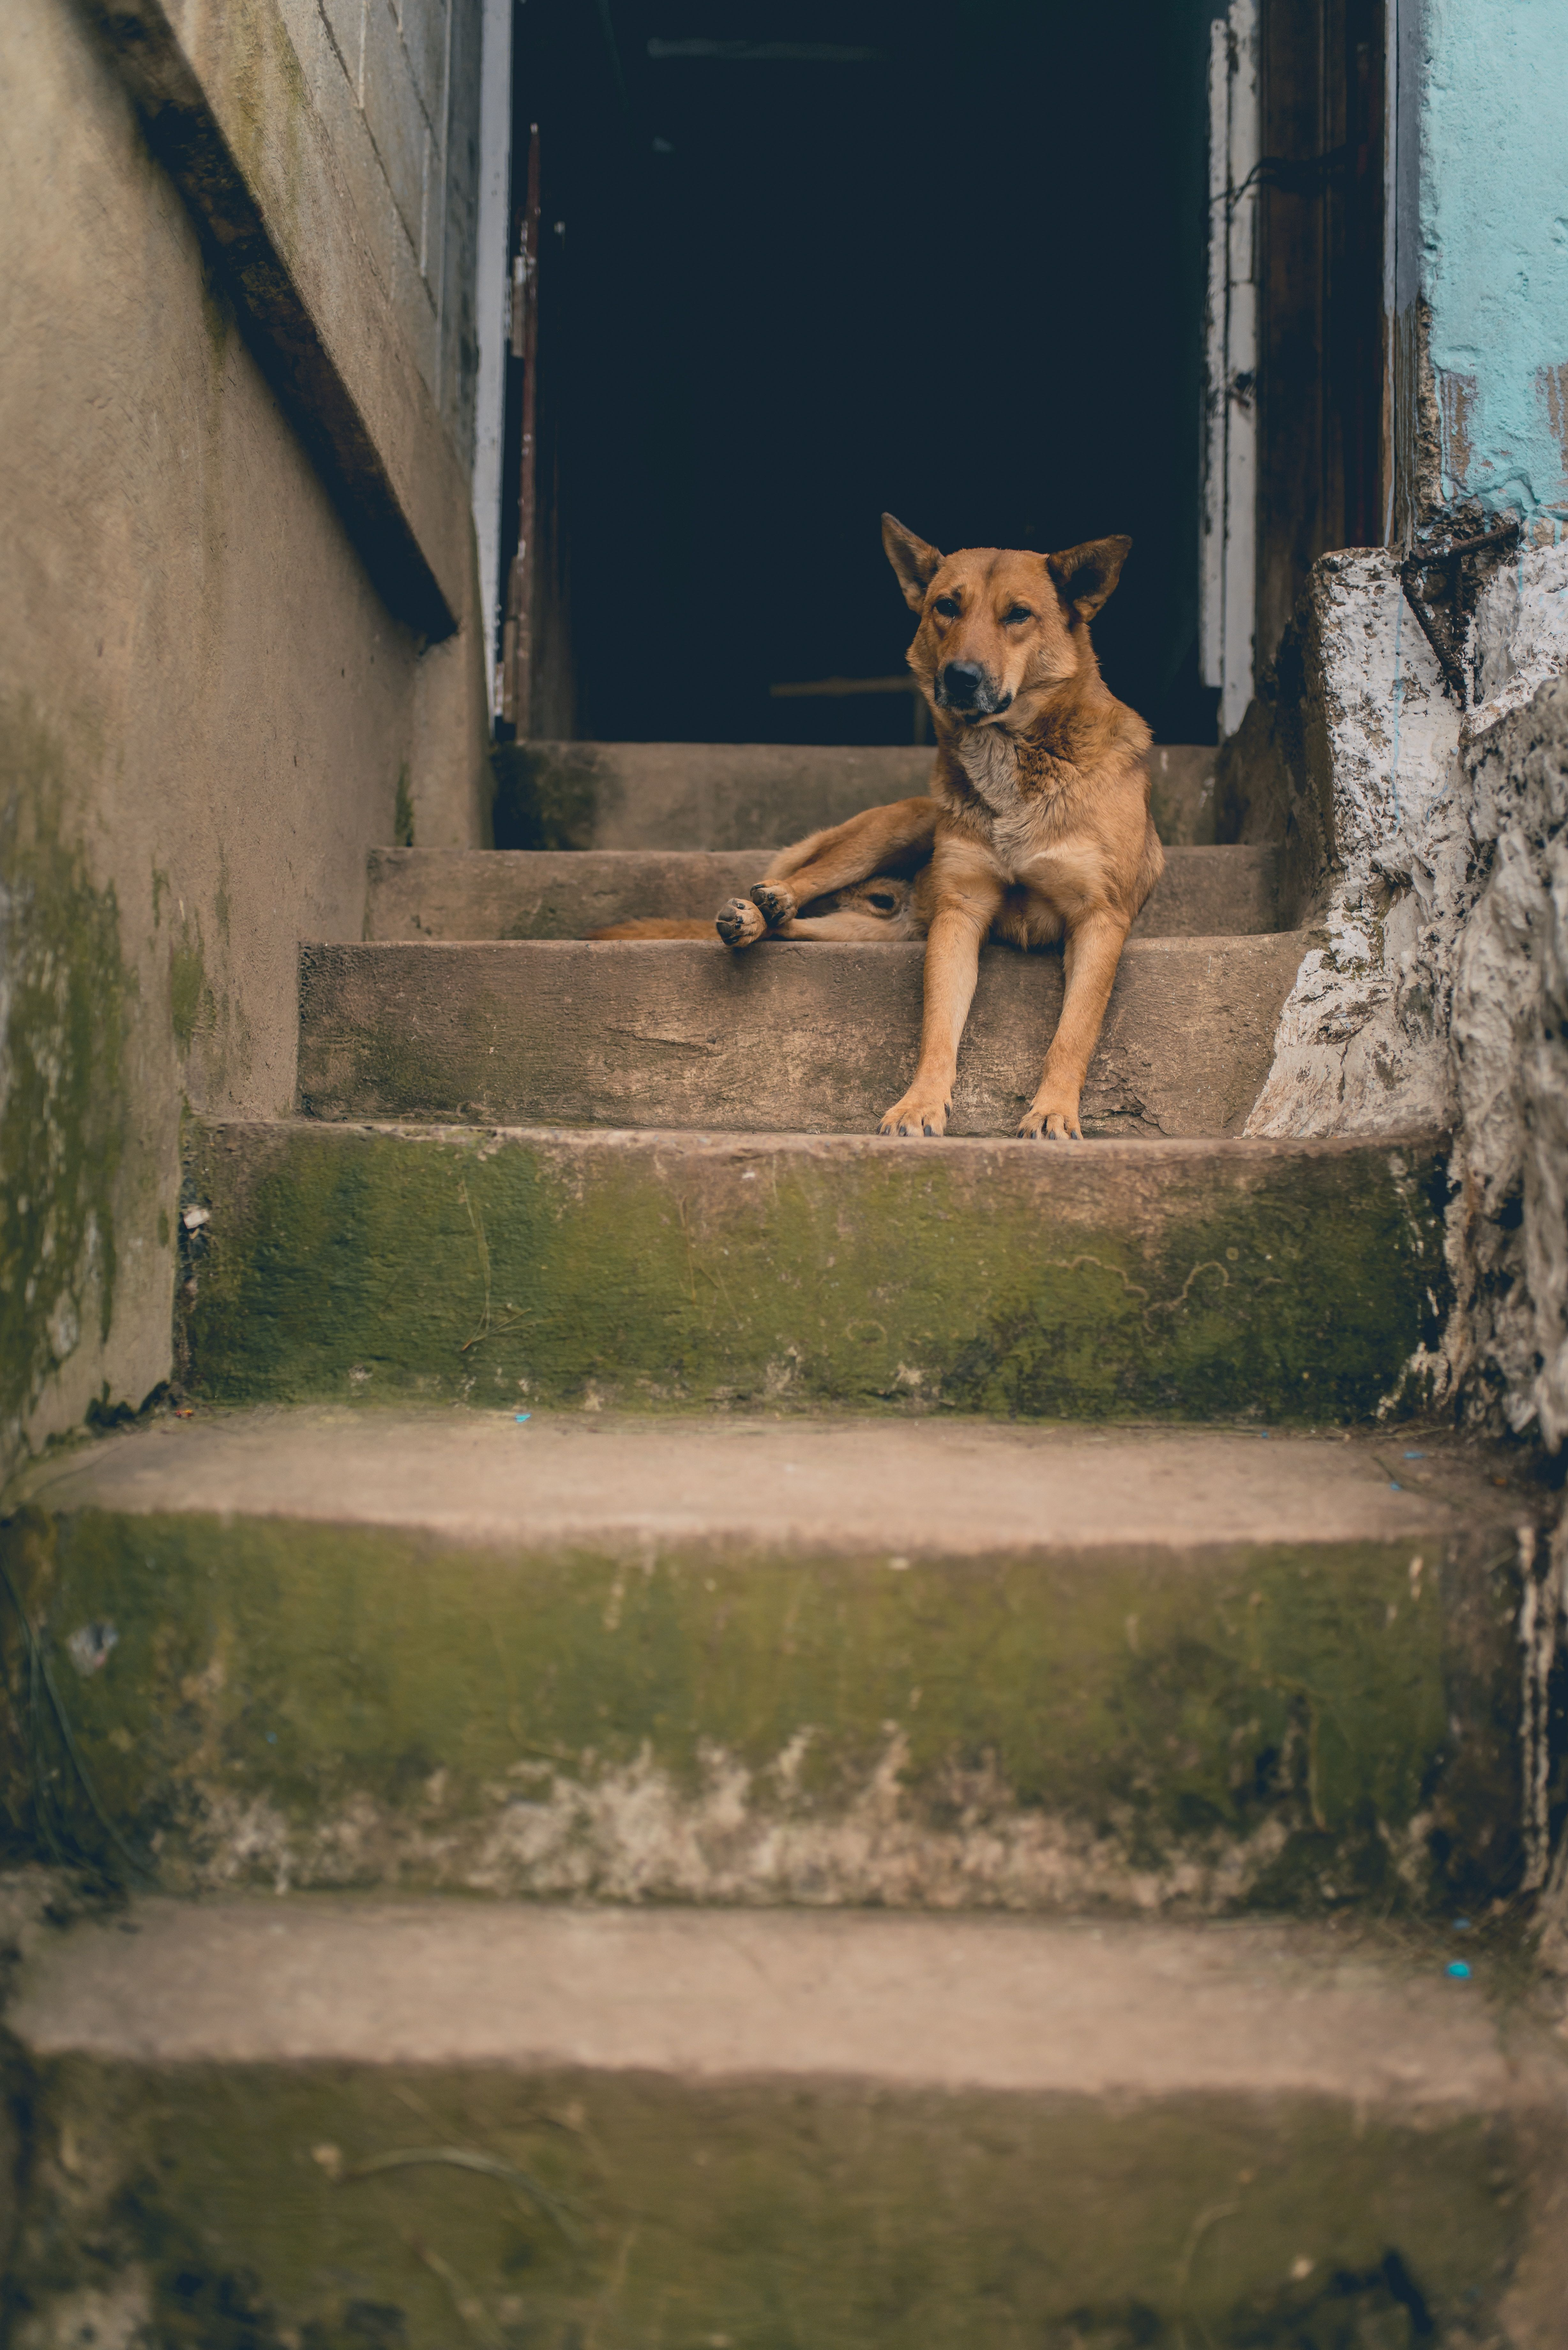 brown dog laying on staircase, NIKON CORPORATION, NIKON